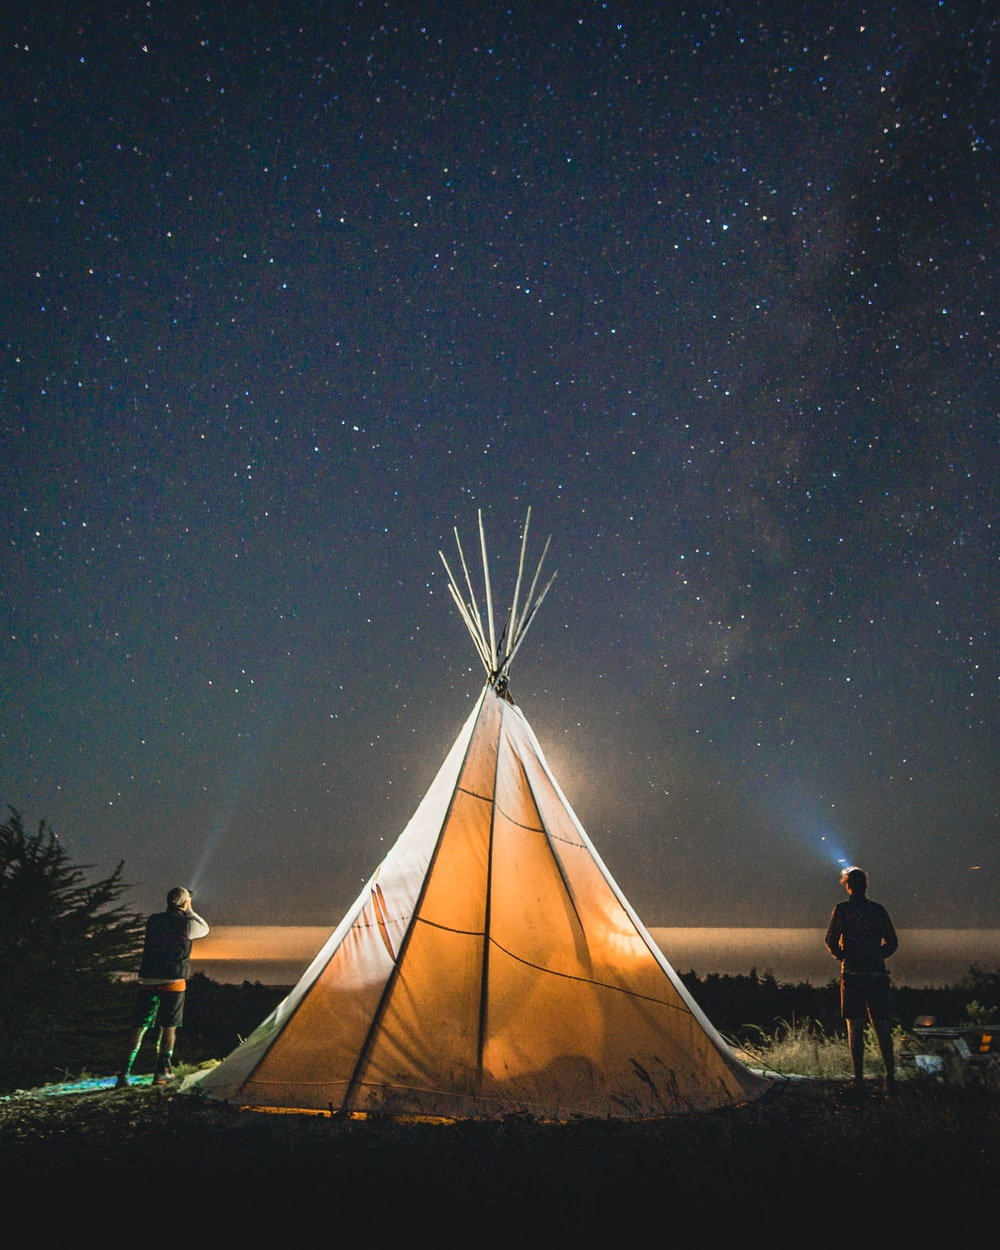 two person standing beside tent during nighttime